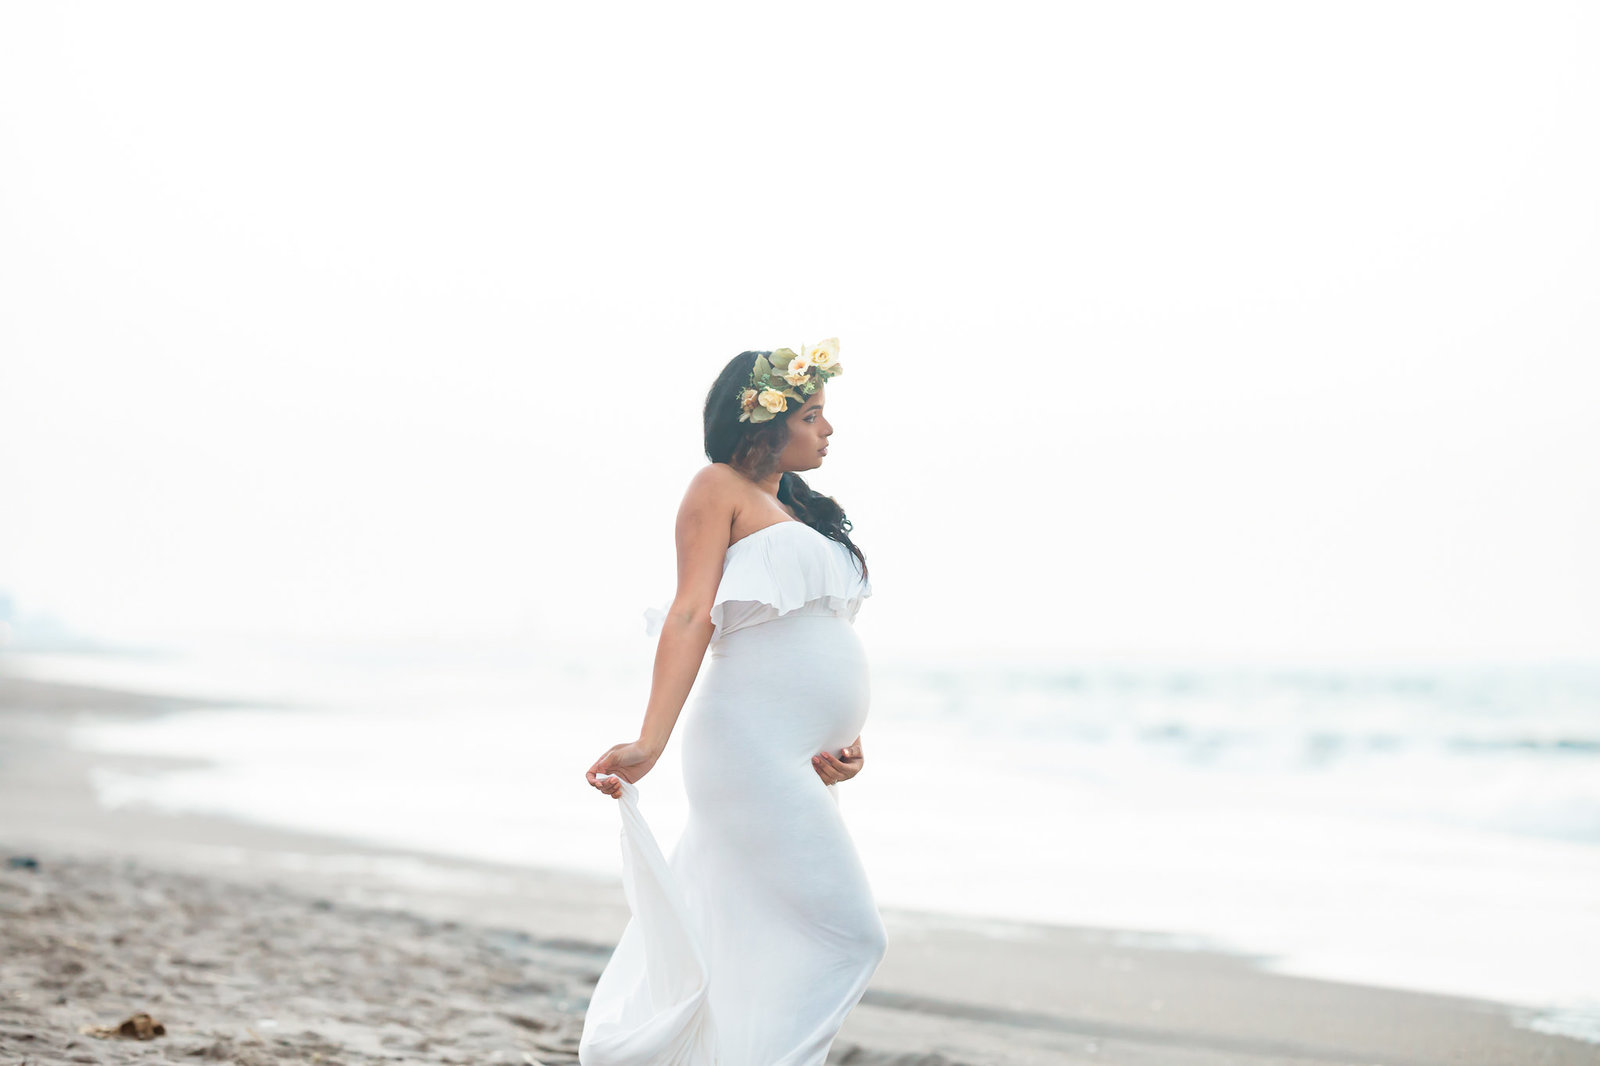 Dreamcatcher Rose Studios - maternity - coney island ny - gazing at ocean